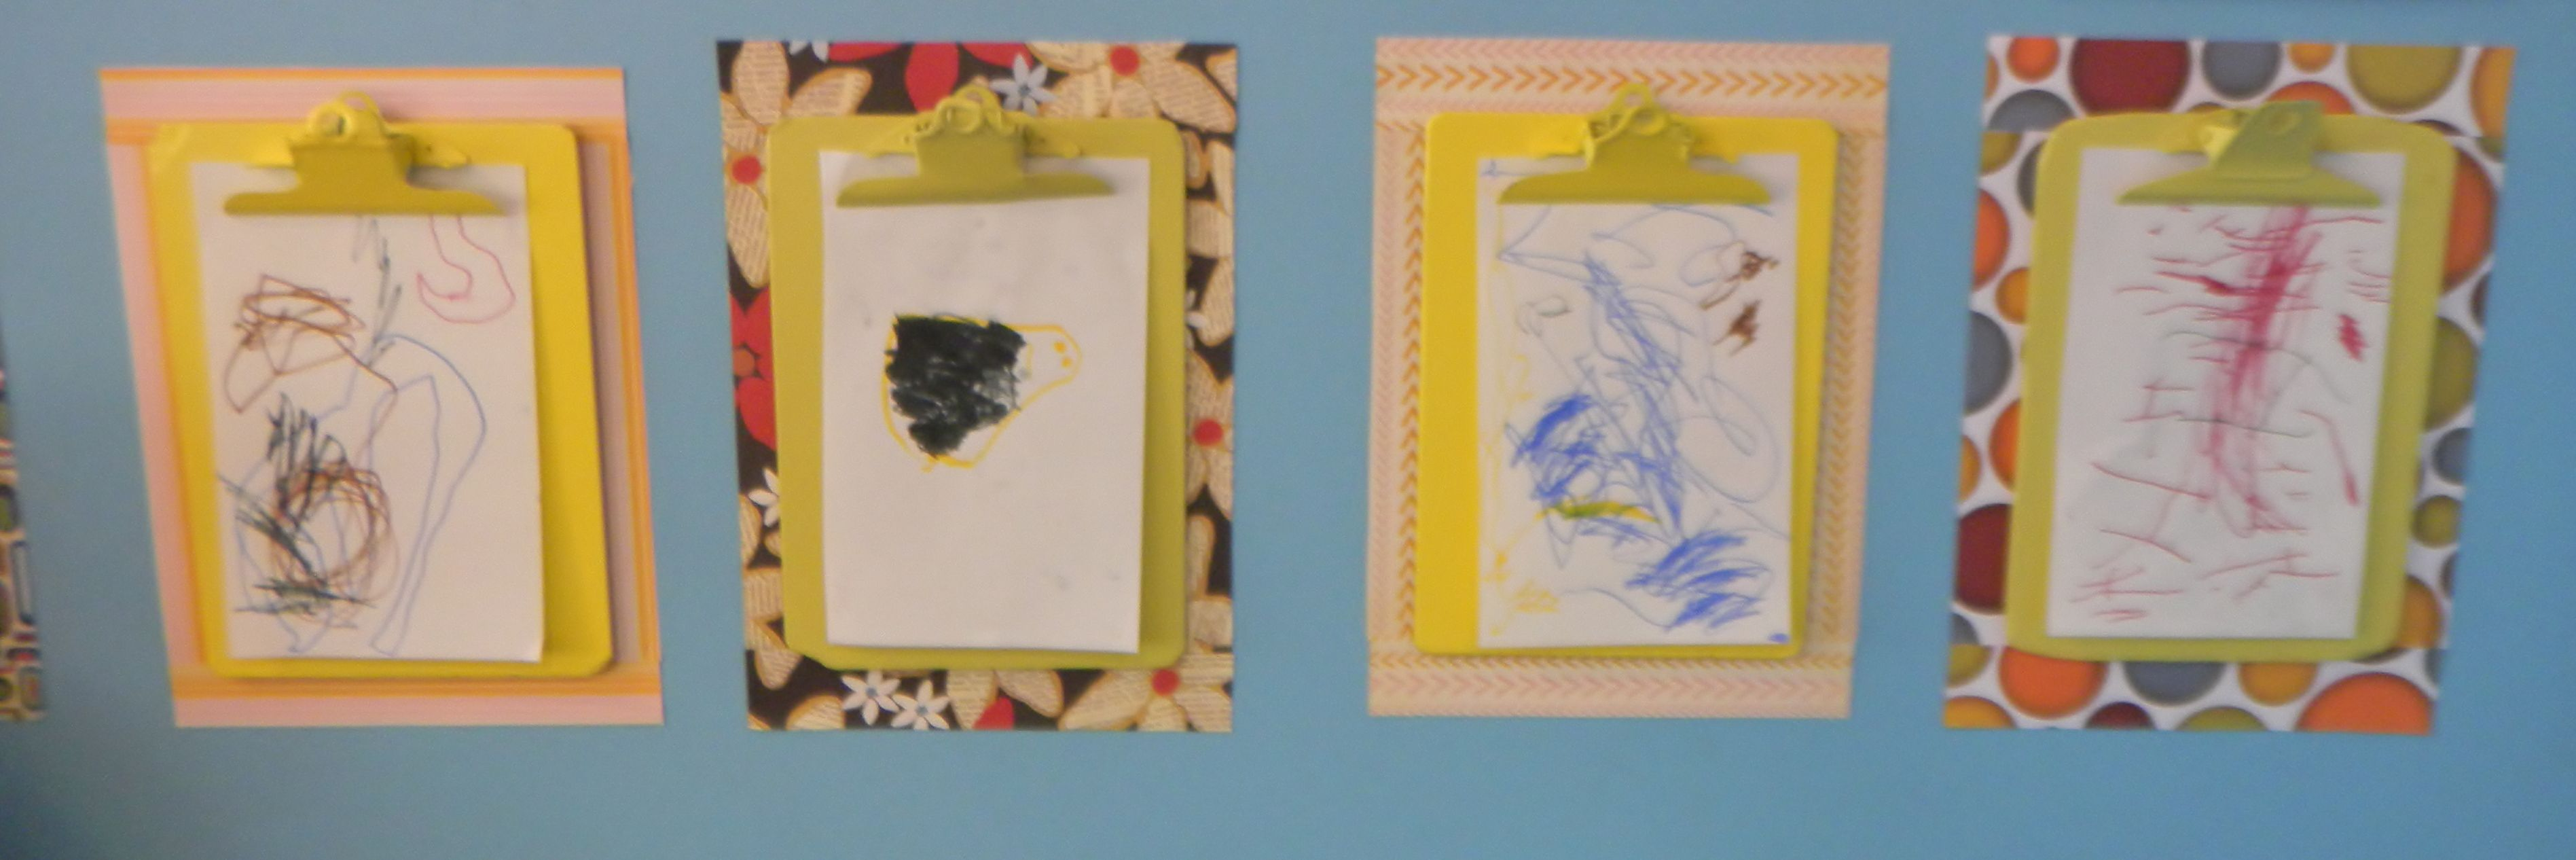 I spray painted old clipboards and hung them  up in the classroom so my children can hang up their own art work.